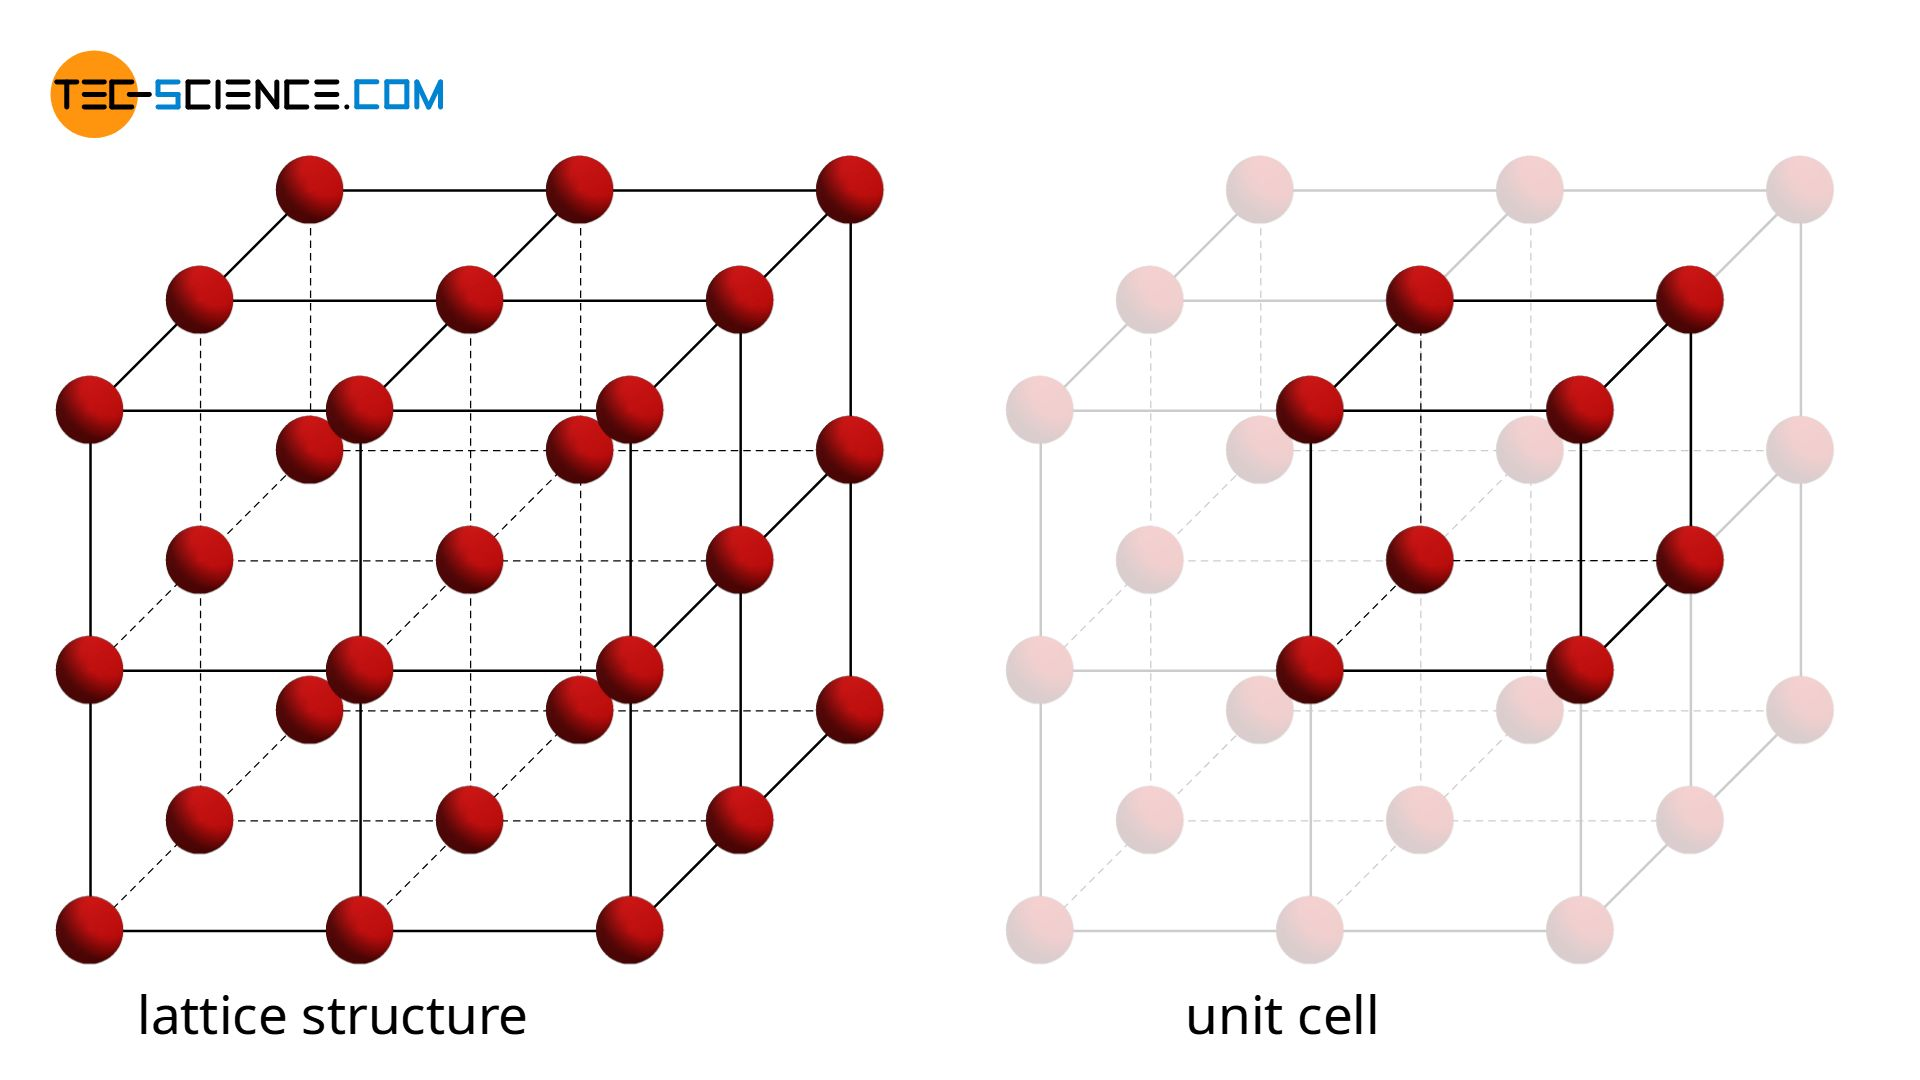 Simple cubic lattice structure (unit cell)